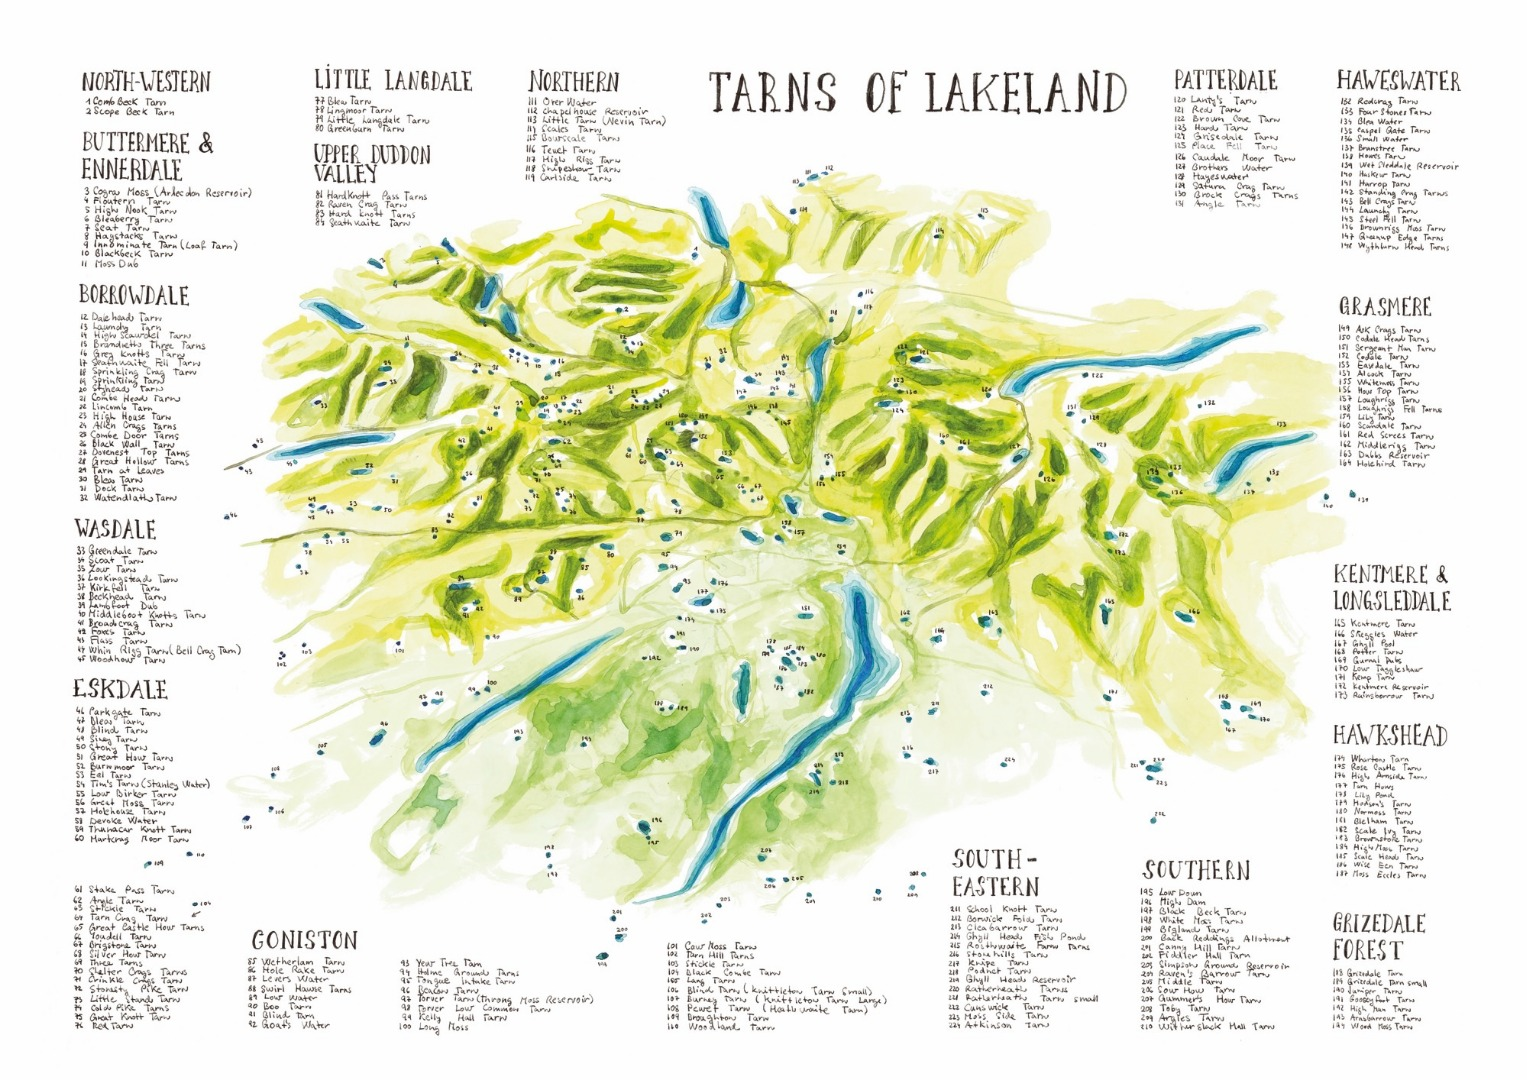 Map of Lake District tarns